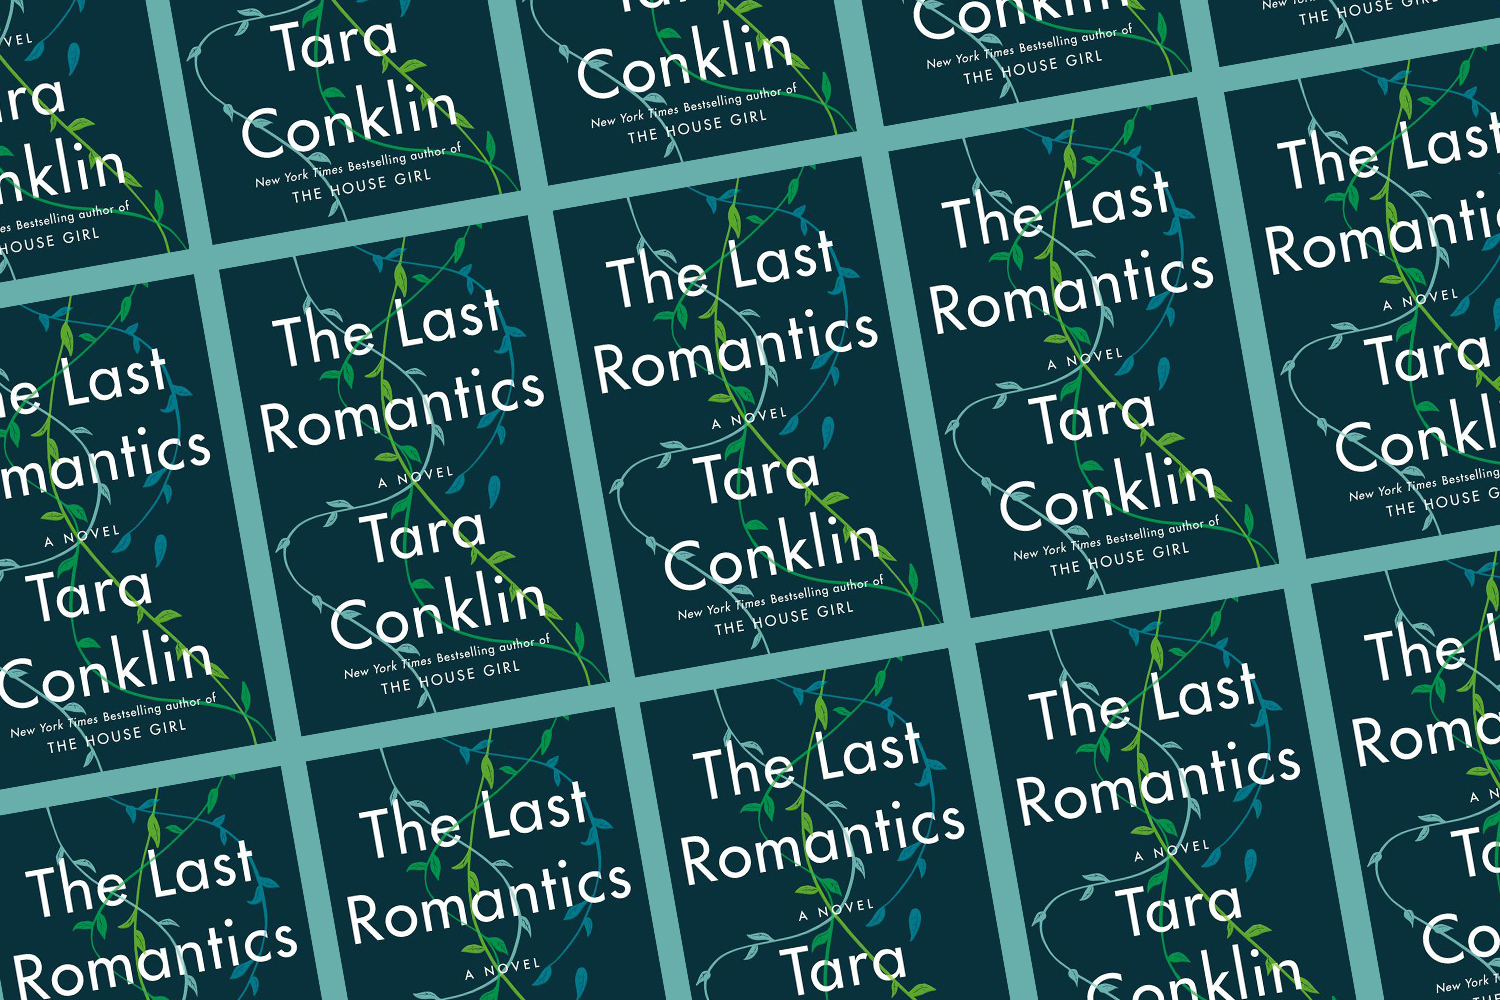 <em>The Last Romantics</em> is a powerful novel that examines the failures and triumphs of love